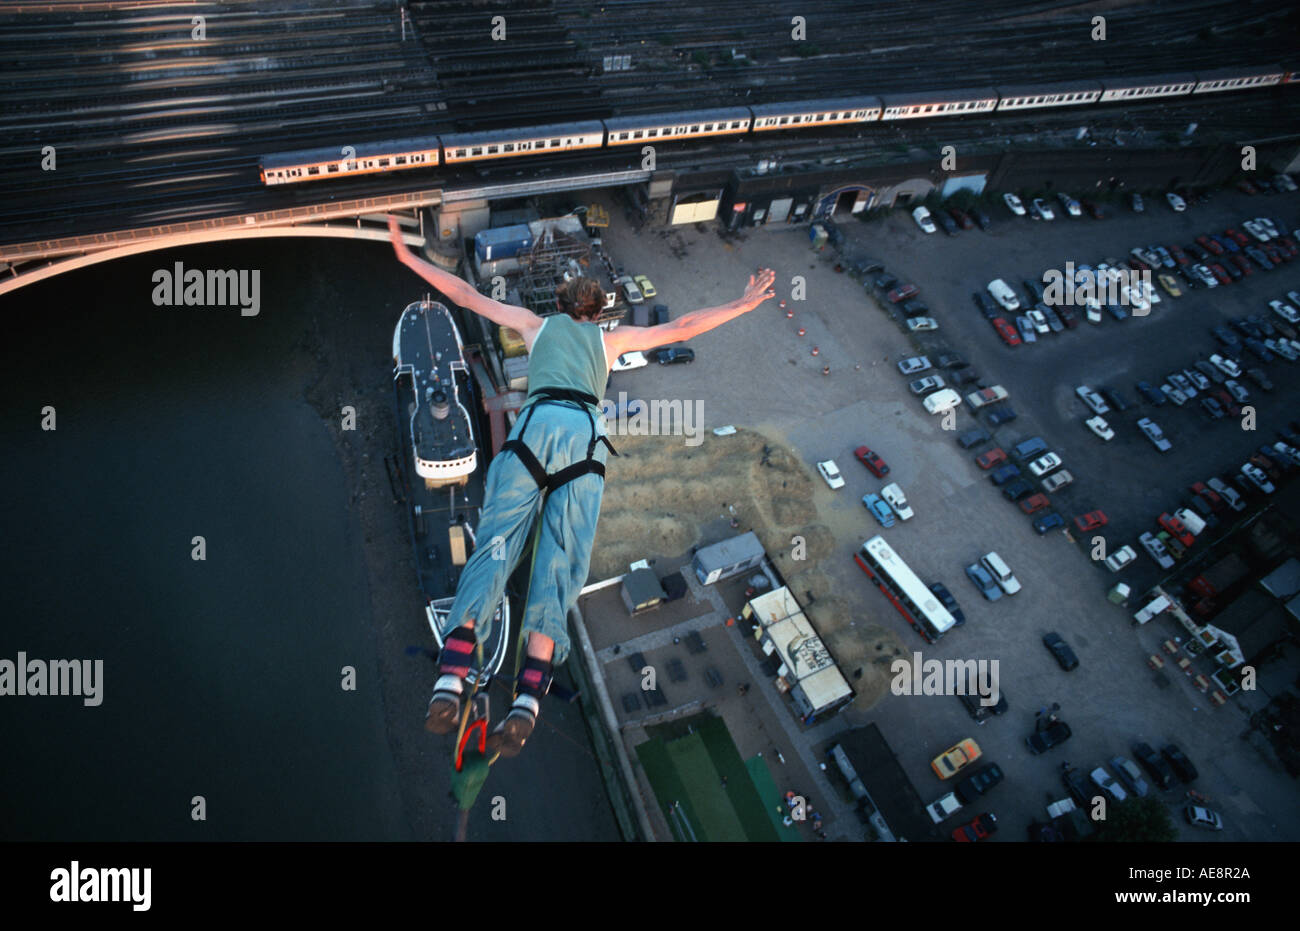 Bungie jumping from a crane high above the river Thames London England - Stock Image